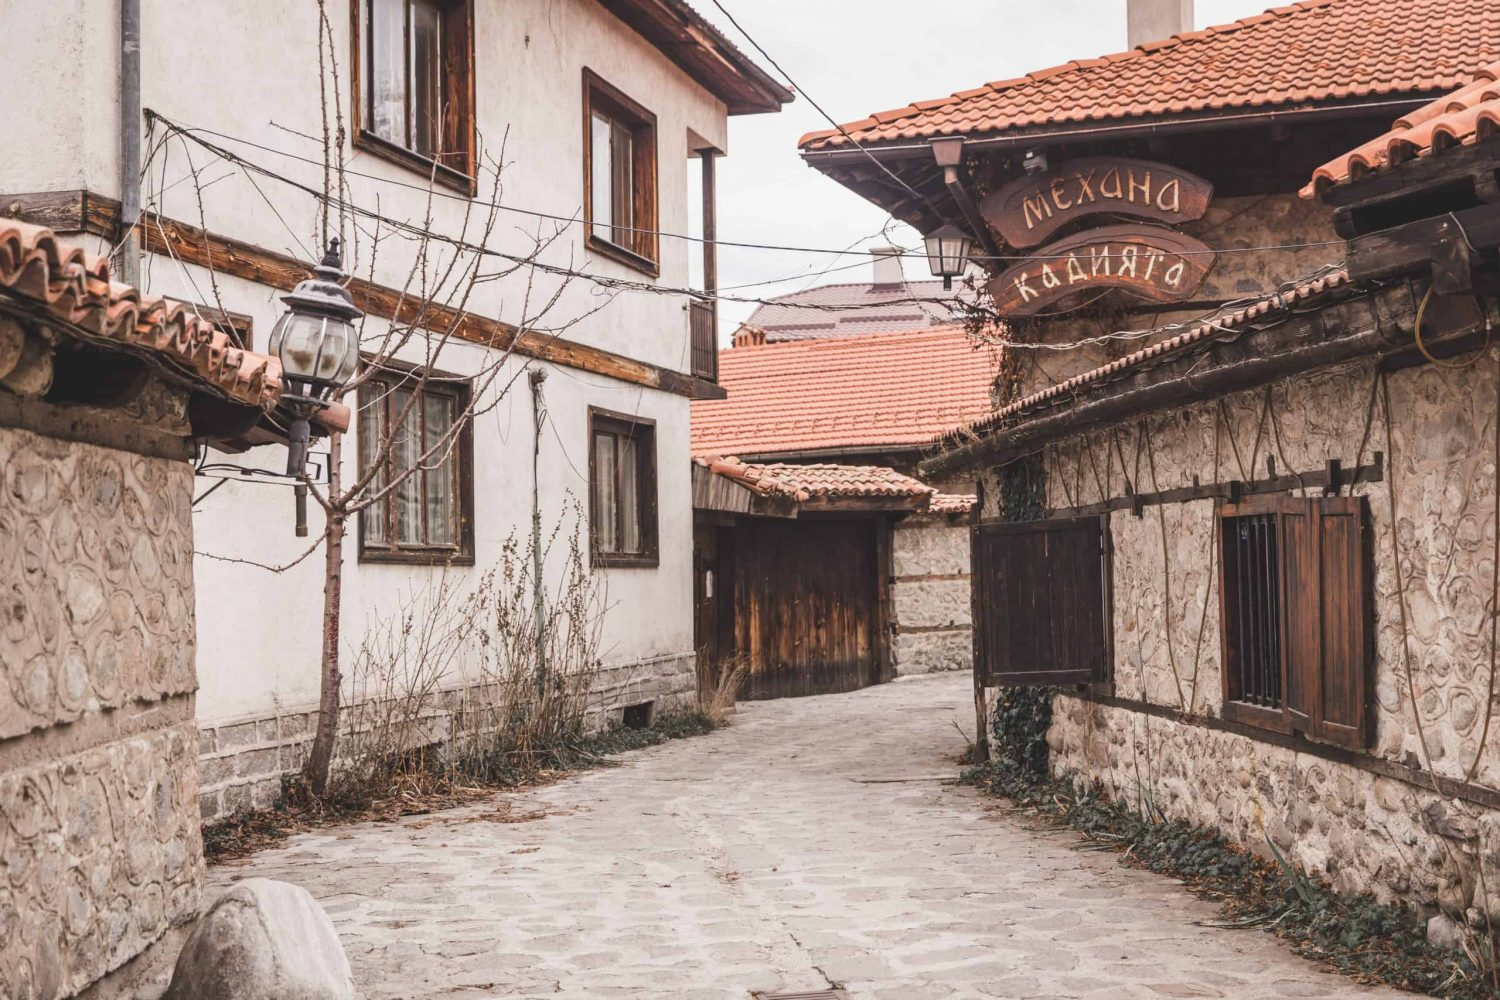 Cobblestone street and stone walls on old tiled rooftop houses in Bansko, Bulgaria's Old Town.